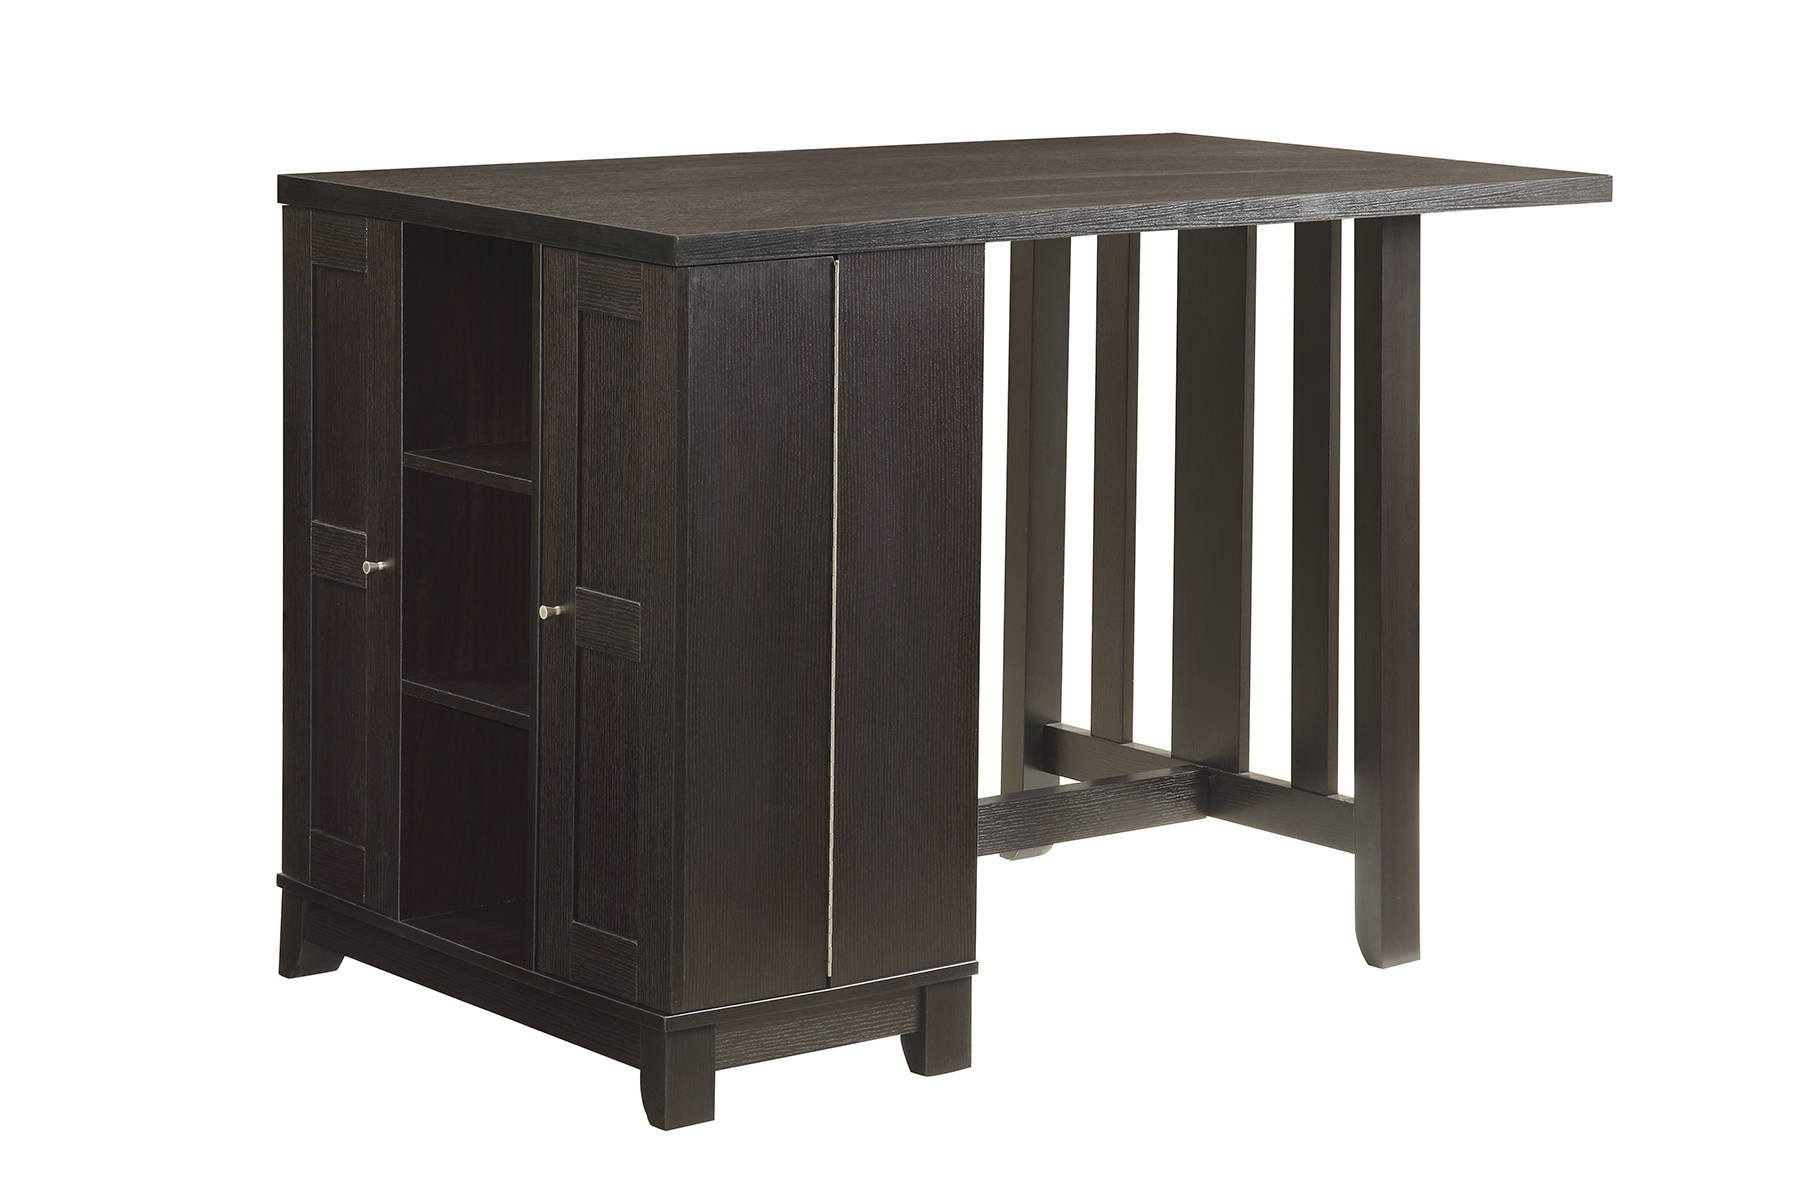 Coaster Furniture Cappuccino Black Wood Adjustable Shelves Bar Table The Classy Home